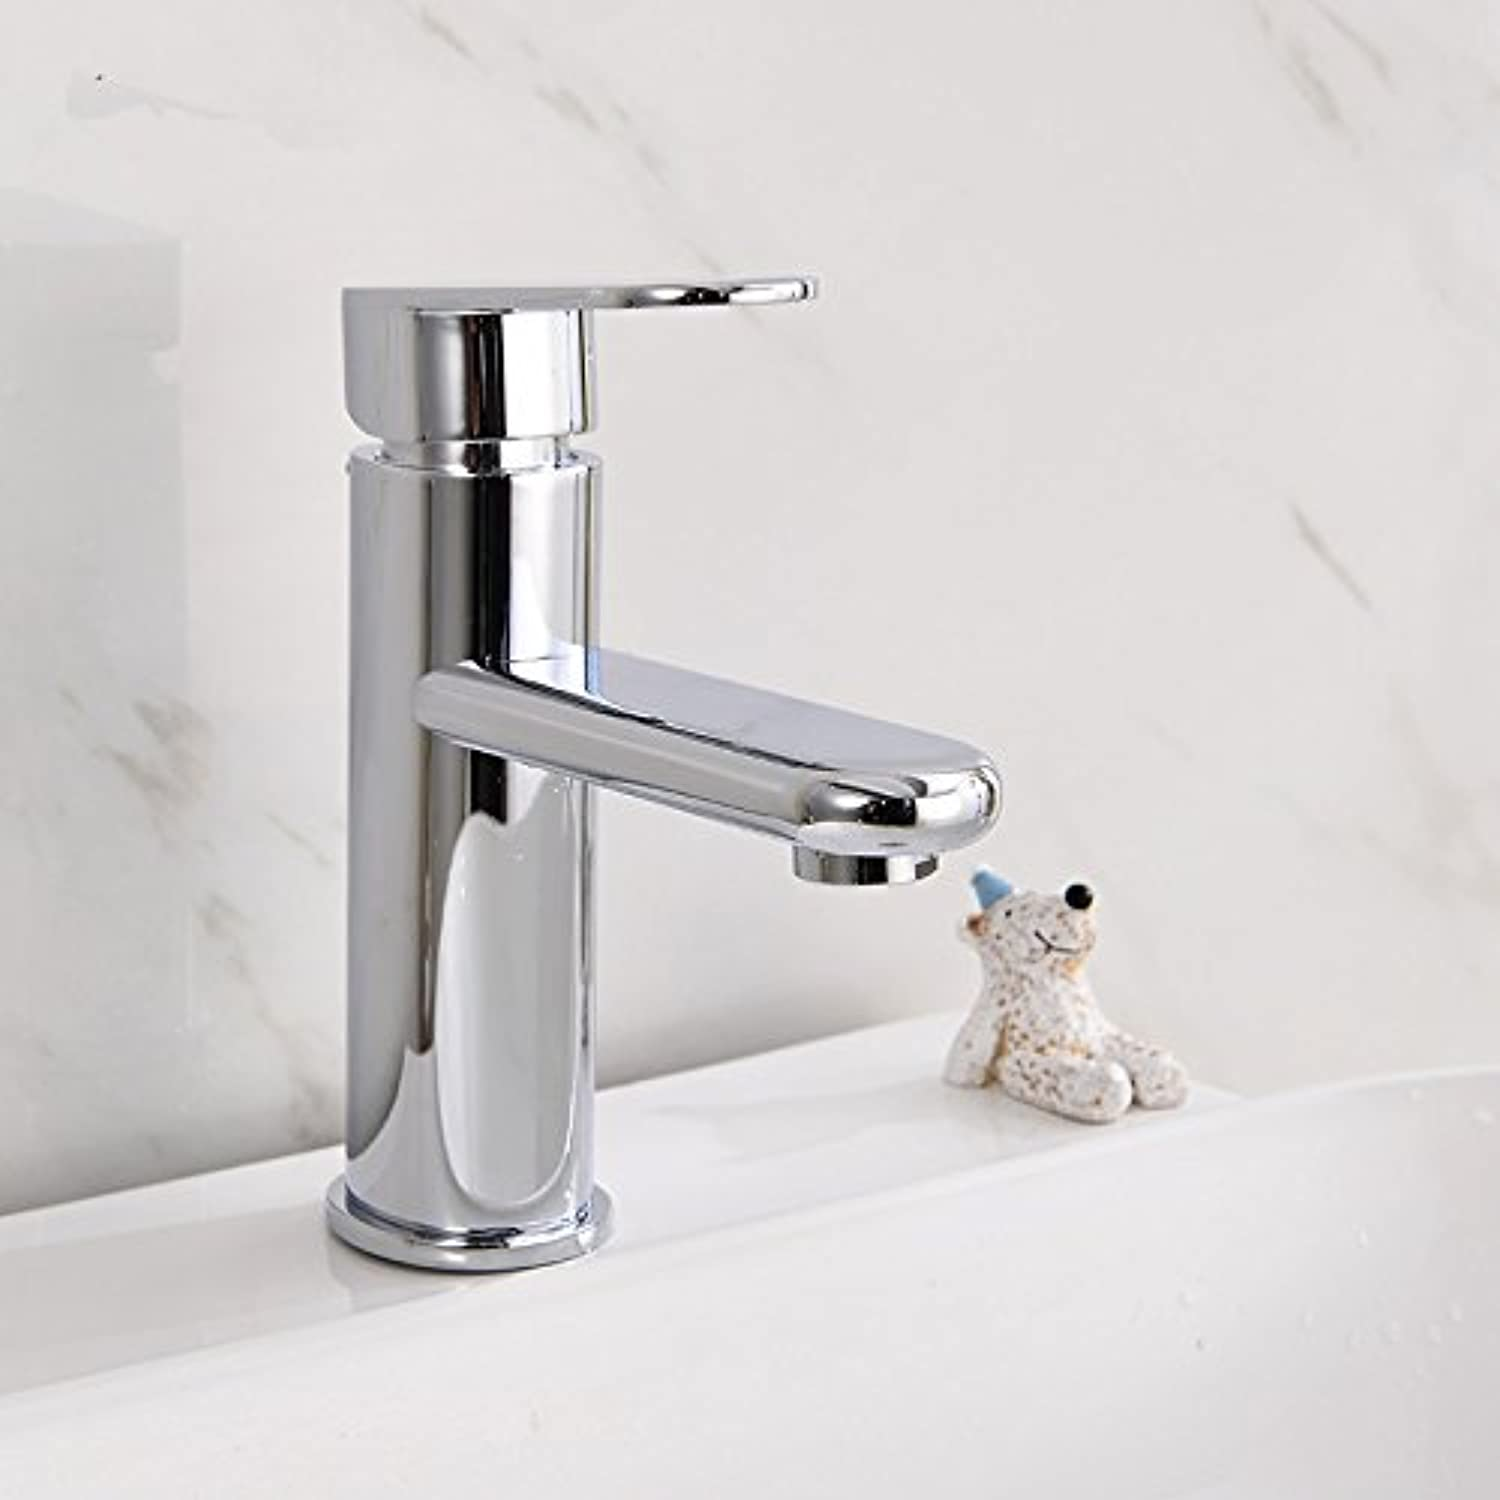 Retro Deluxe Faucetinging Free shipping Hot cold copper basin faucet with single handle bathroom basin sink faucet of polished chrome basin sink tap,not with hose